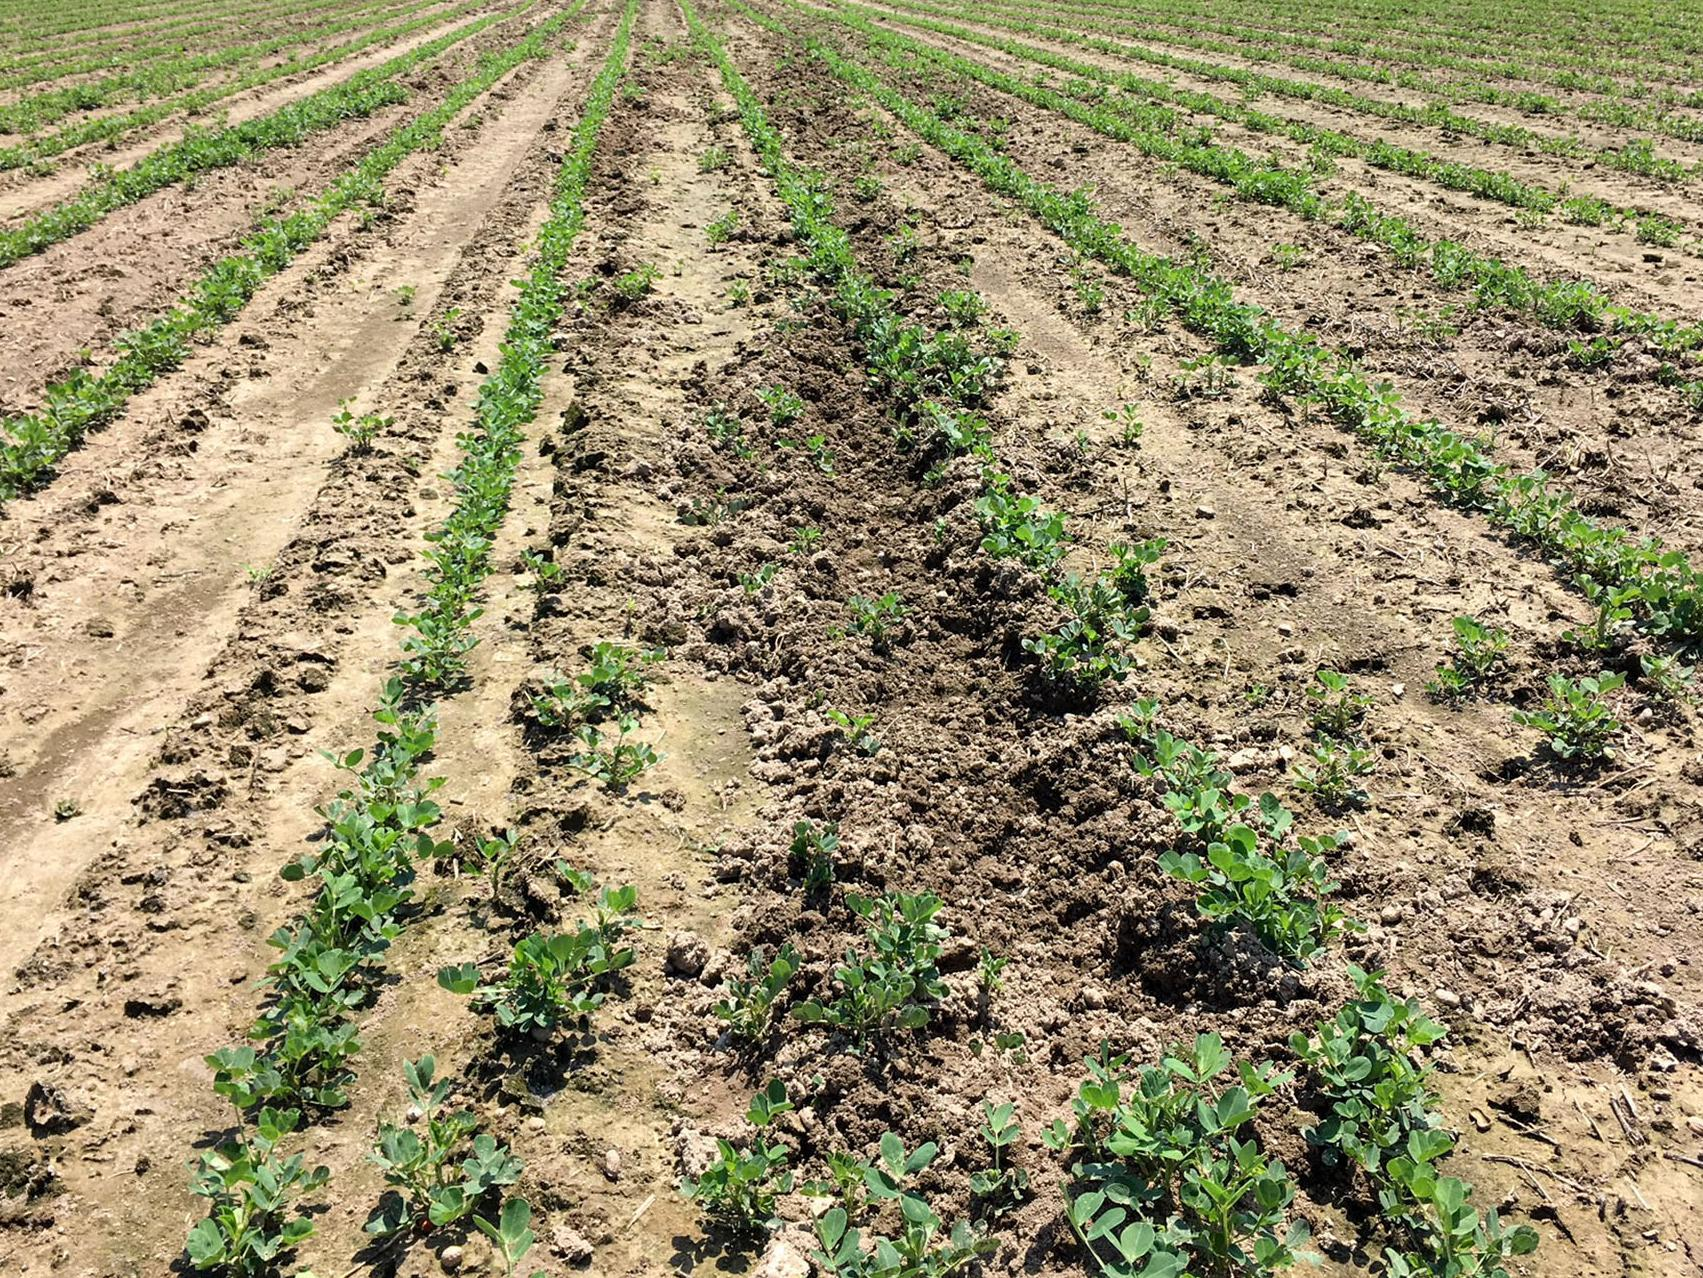 Rows of small green plant, some near disturbed soil, in a large field.